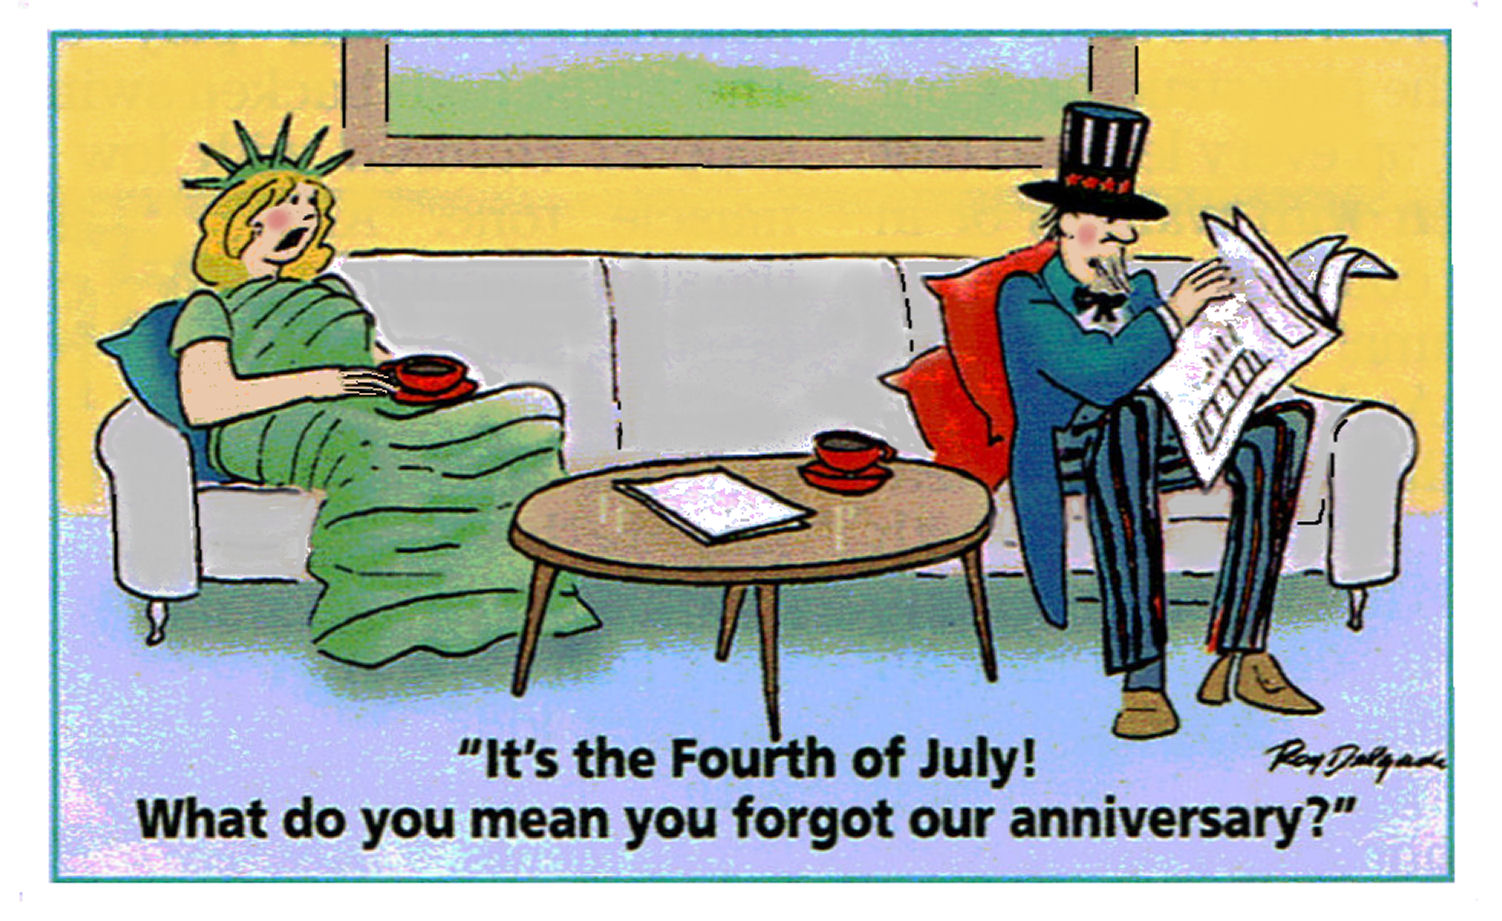 Happy fourth of july 2016 the citadel post by lex of sydney australia on jun 30 2016 at 605pm kristyandbryce Gallery